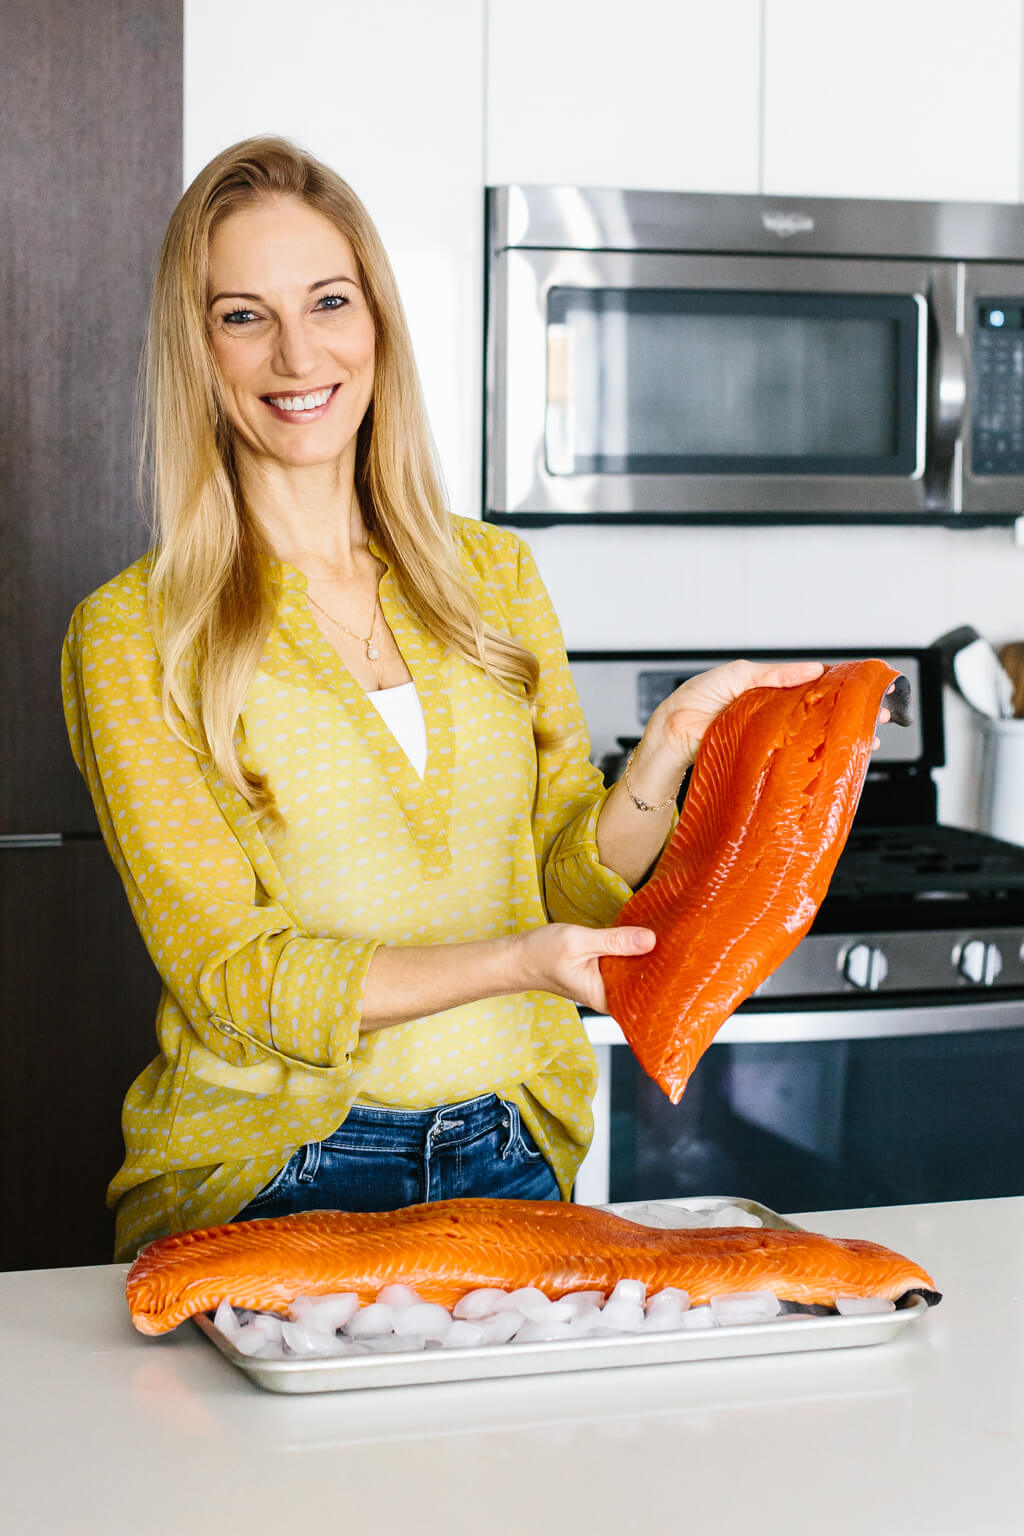 Girl holding sockeye salmon filet in a kitchen.